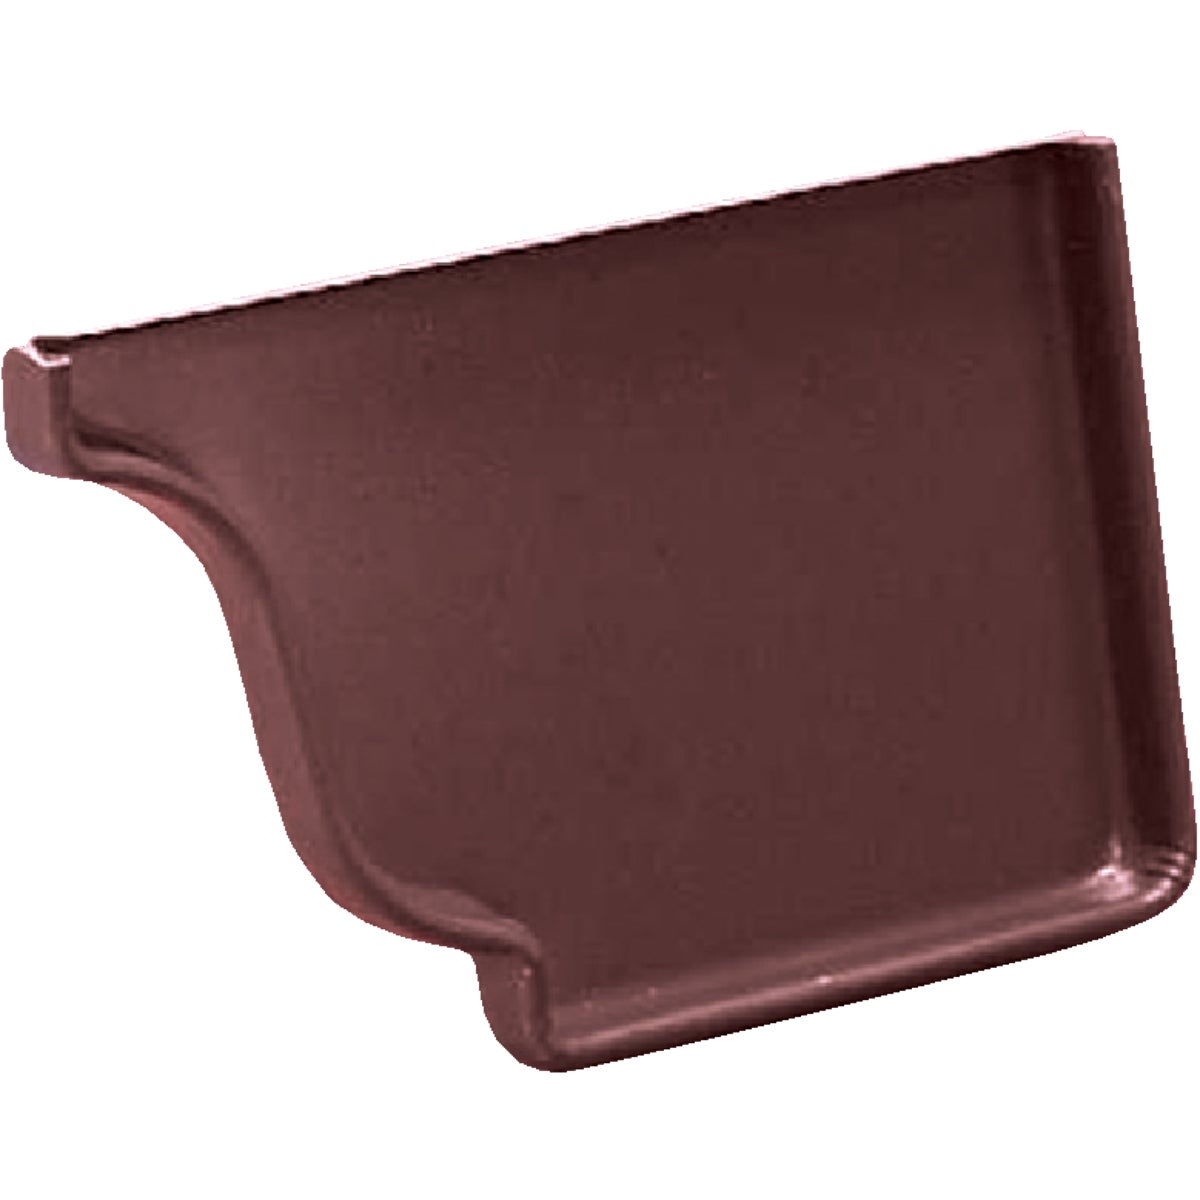 Amerimax Home Prod. BROWN RIGHT END CAP 3320619